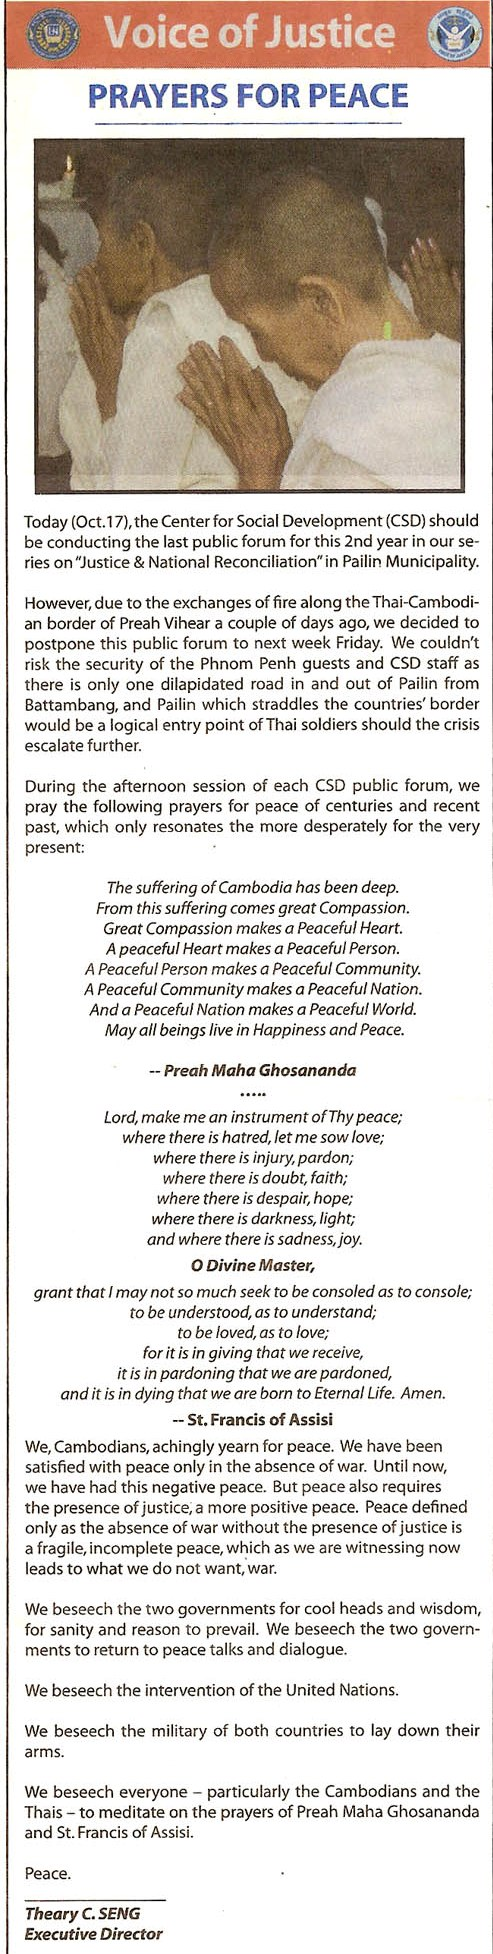 Prayers for Peace Moha Ghosananda and St. Francis of Assisi Theary Seng as CSD director